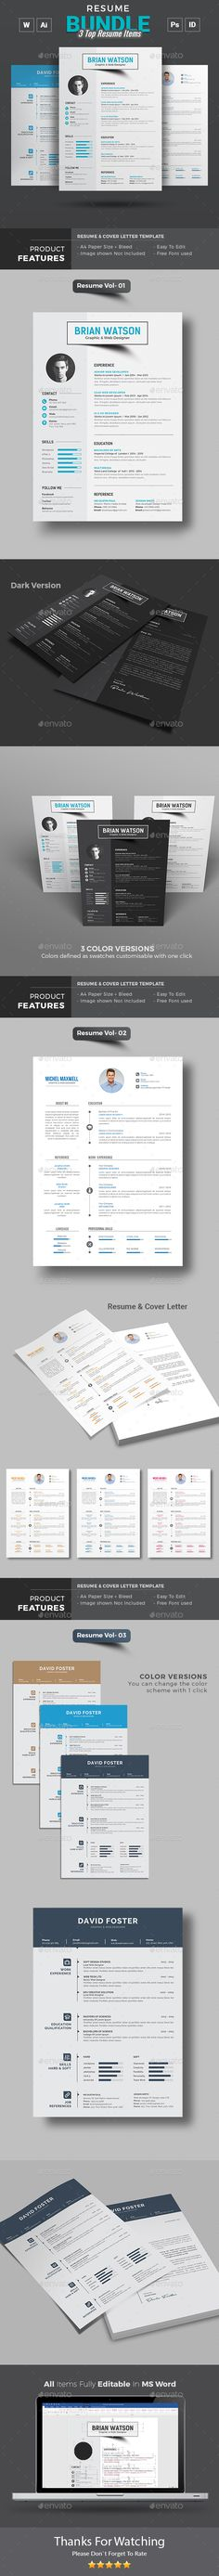 Resume Creative Cv TemplateSimple Resume Bundle